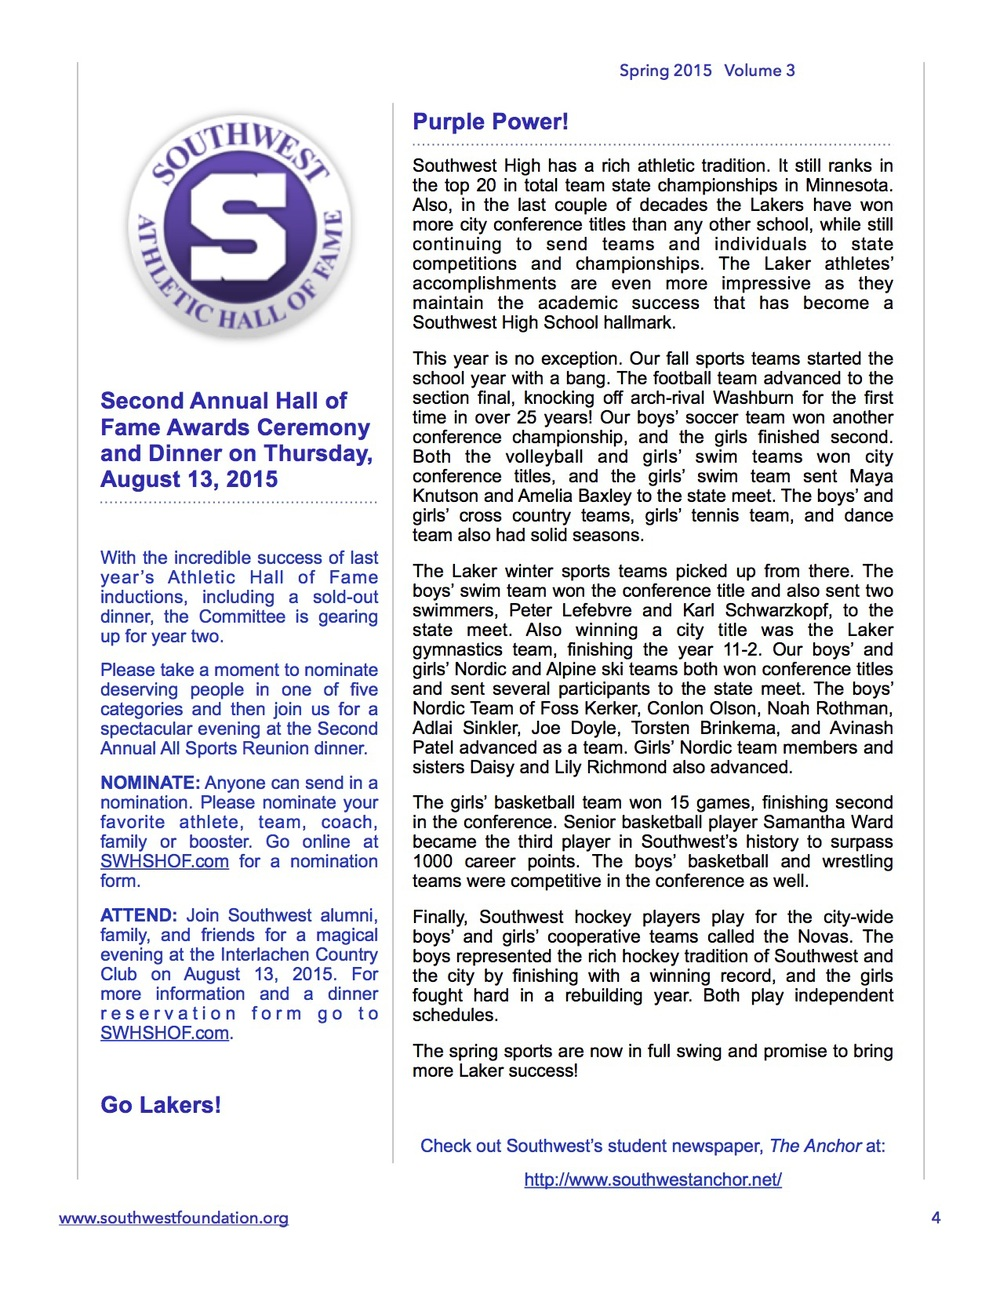 89198 Southwest Newsletter Final p4.jpg